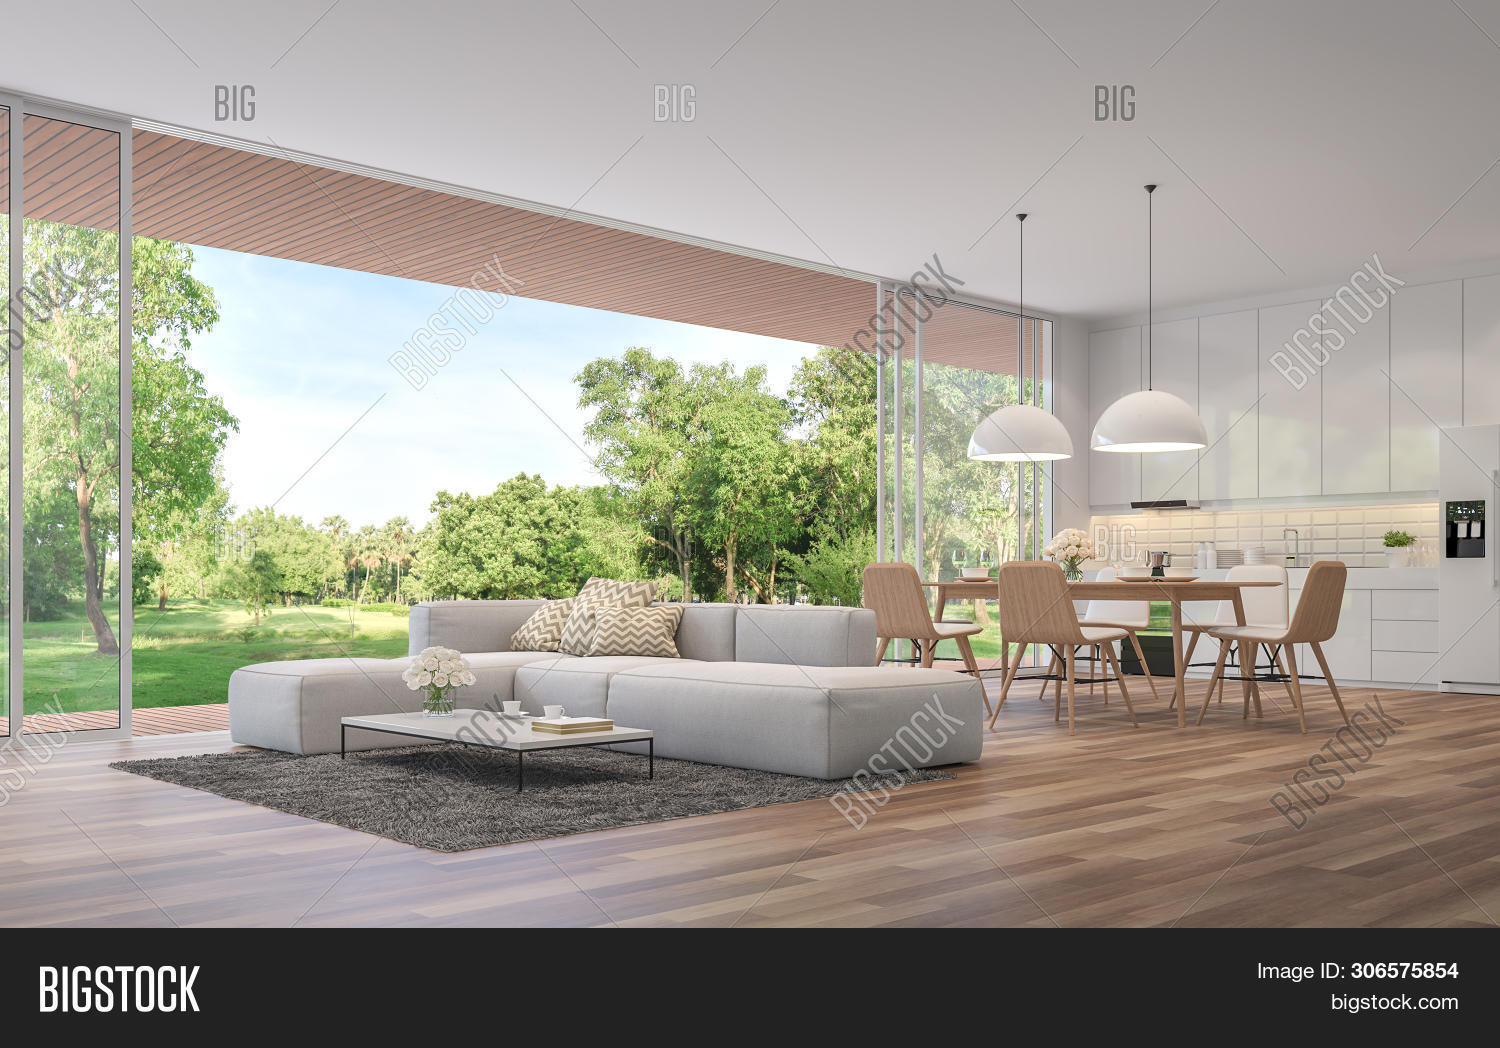 3D,architecture,backgrounds,bright,chair,comfortable,concepts,contemporary,cozy,decoration,design,dining,door,elegant,floor,fresh,furniture,garden,glass,house,interior,kitchen,living,luxury,minimal,modern,nature,open,pantry,relaxation,render,resident,room,simple,sky,sliding,sofa,style,summer,sunlight,terrace,tree,tropical,vacations,view,villa,wall,white,window,wood